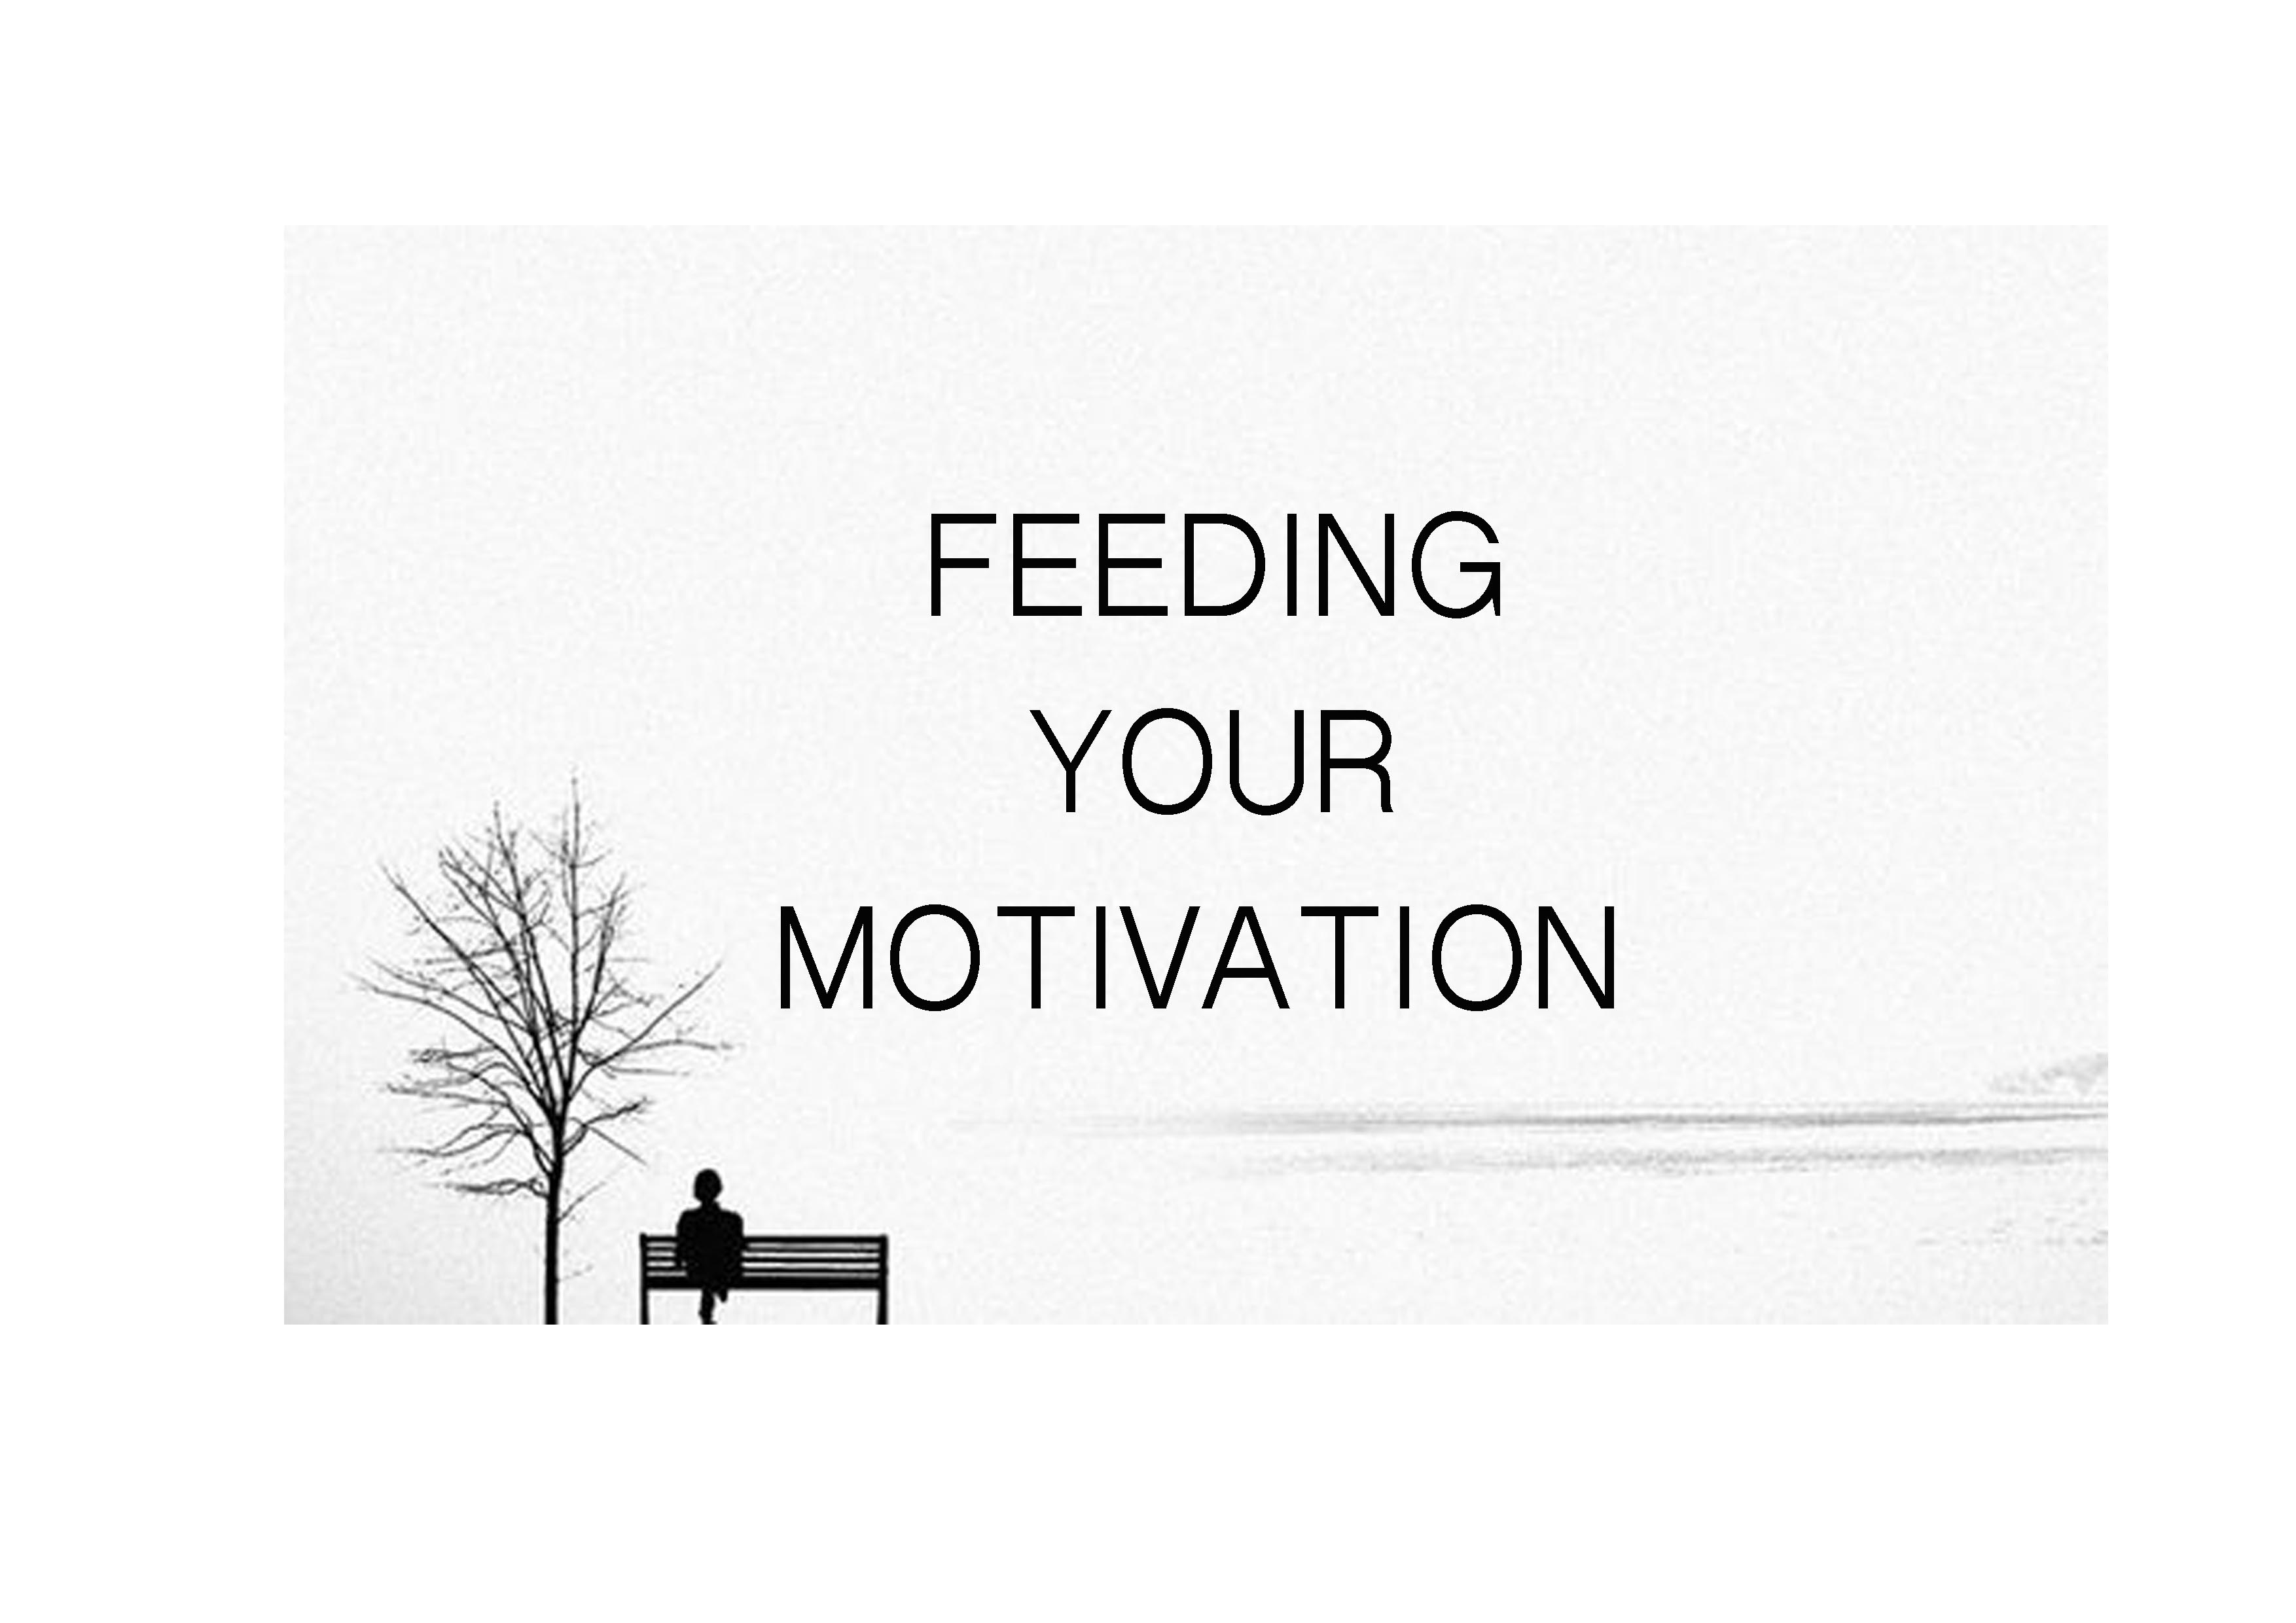 How to feed your motivation